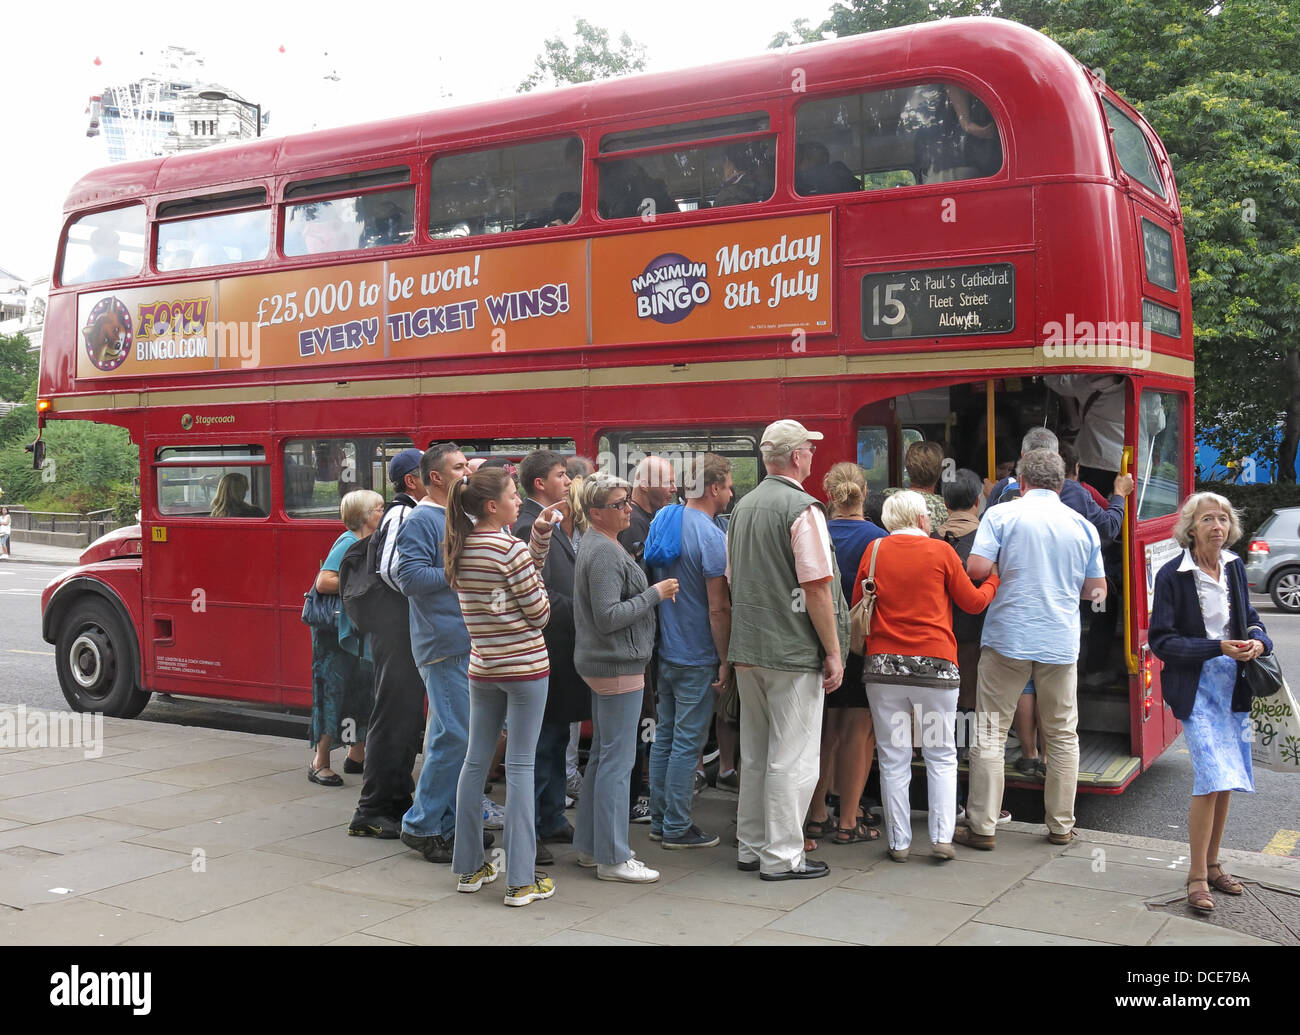 boarding,getting,on,classic,city,transports,15,number,no15,traditional,old,fashioned,ourist,travel,travellers,sightsee,sightseeing,sightseers,tower,hill,of,England,UK,united,kingdom,europe,route,st,pauls,cathedral,route15,TFL,for,double,decker,double-decker,heritage,route,vehicle,Transport,AEC,LT,RM,gotonysmith,Pauls,doubledecker,deck,upstairs,top,vehicles,routes,omnibus,heritageroutes,Stagecoach,company,services,between,Trafalgar,Square,and,Tower,Hill,ALM71B,ALM,71B,crowd,line,queue,wait,waiting,patiently,Buy Pictures of,Buy Images Of,English queue,British queue